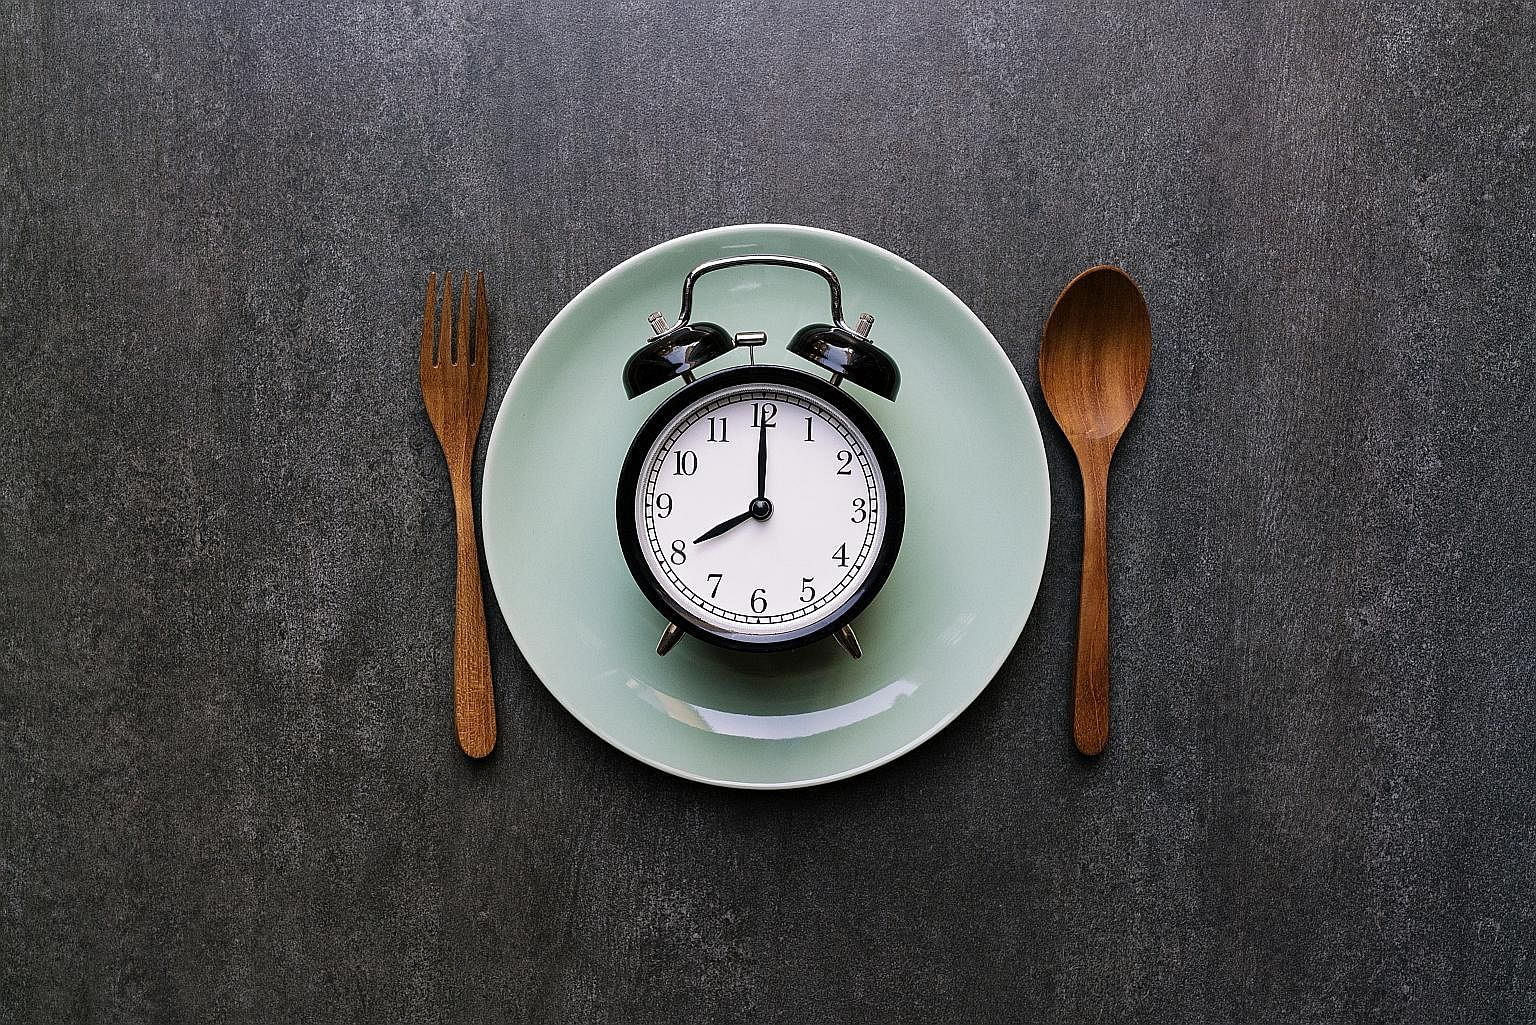 The intermittent fasting regimen involves fasting for certain hours of the day, or for entire days, consecutively or not.